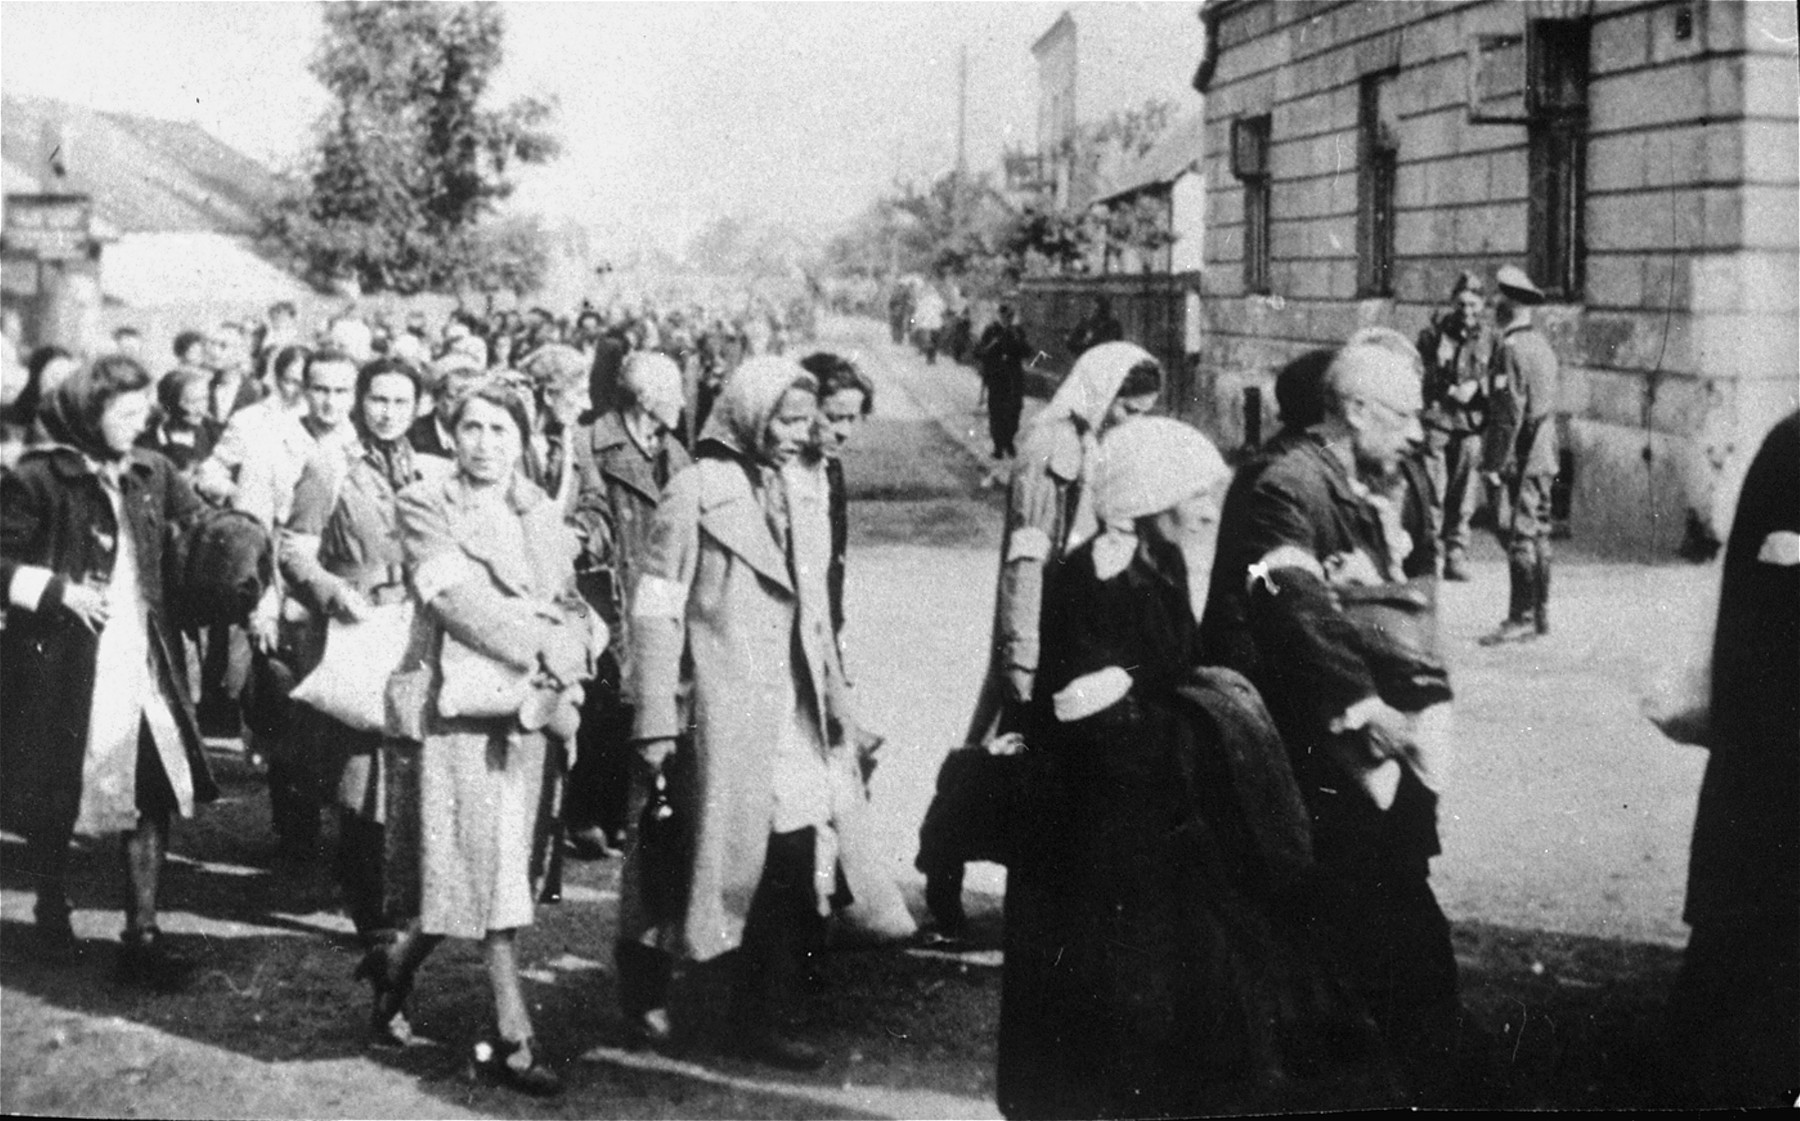 Jews walk in a long column through the streets of Rzeszow during a deportation action from the ghetto.